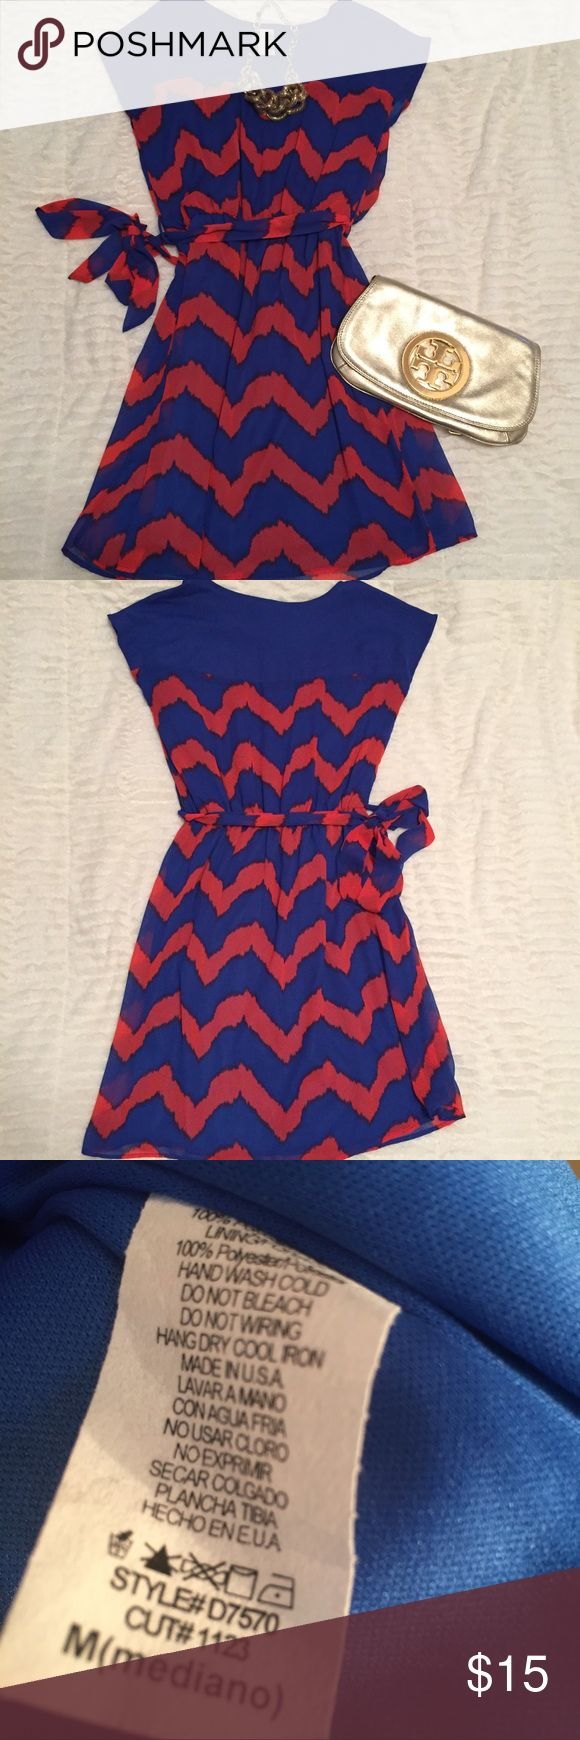 "Blue and Orange Chevron Dress Blue and orange chevron dress with tie belt and elastic waist-100 poly- skirt portion is approx 18""-good used condition Francesca's Collections Dresses"